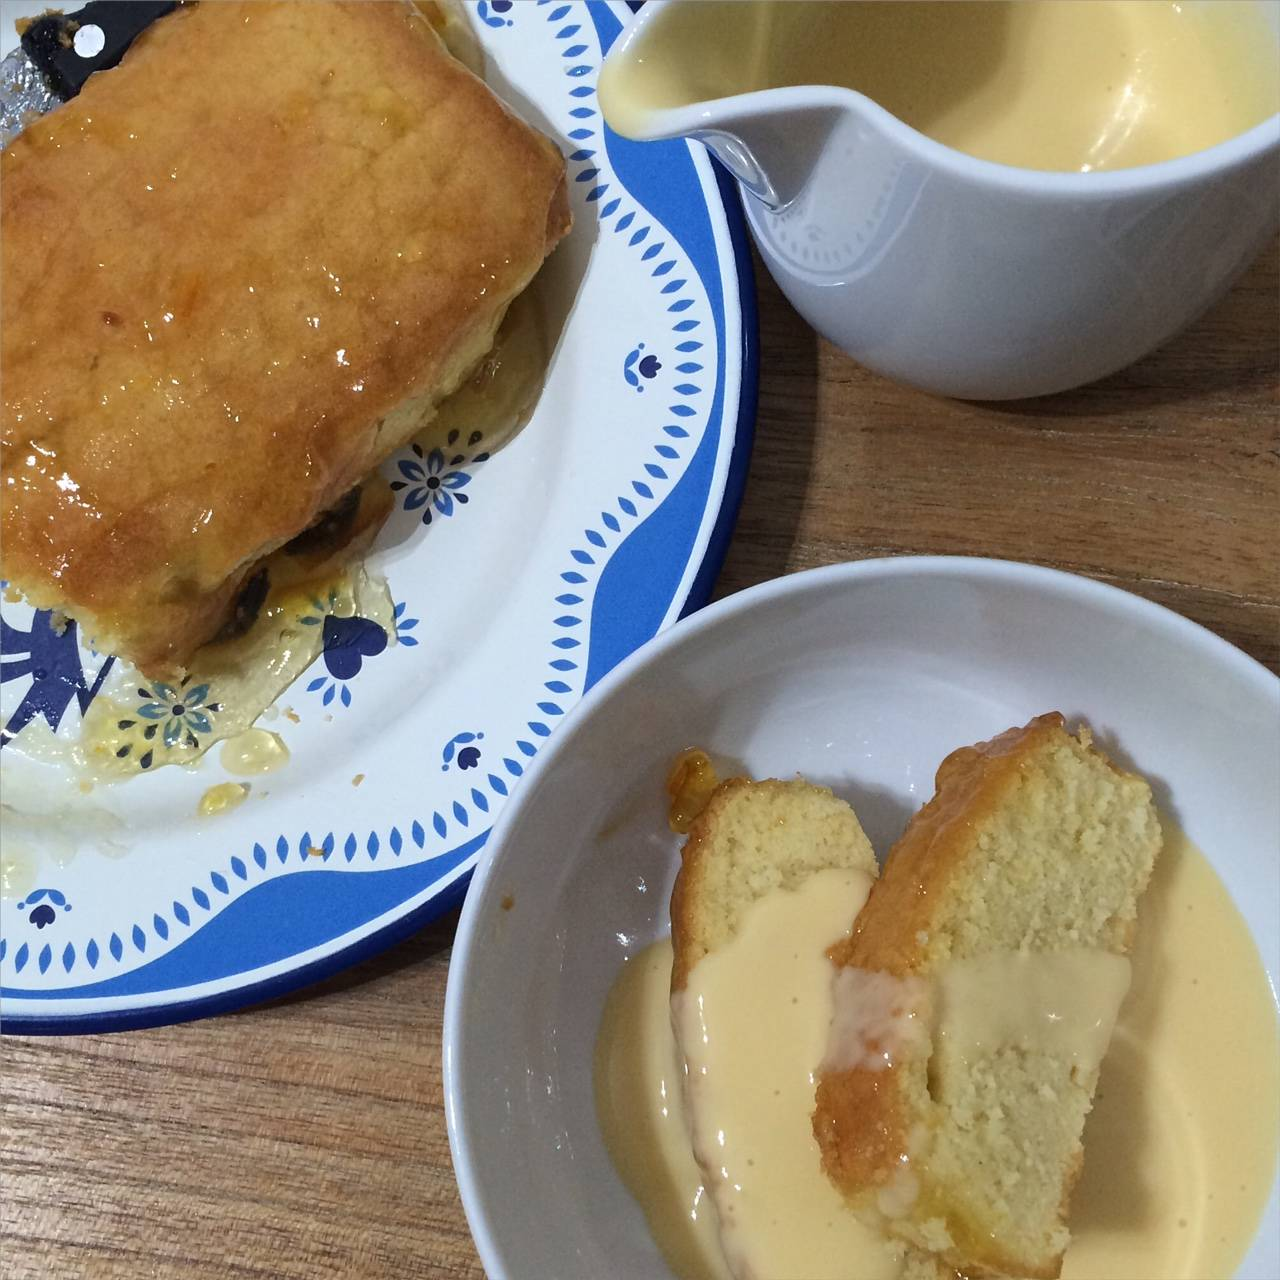 Ginger and Marmalade Sponge